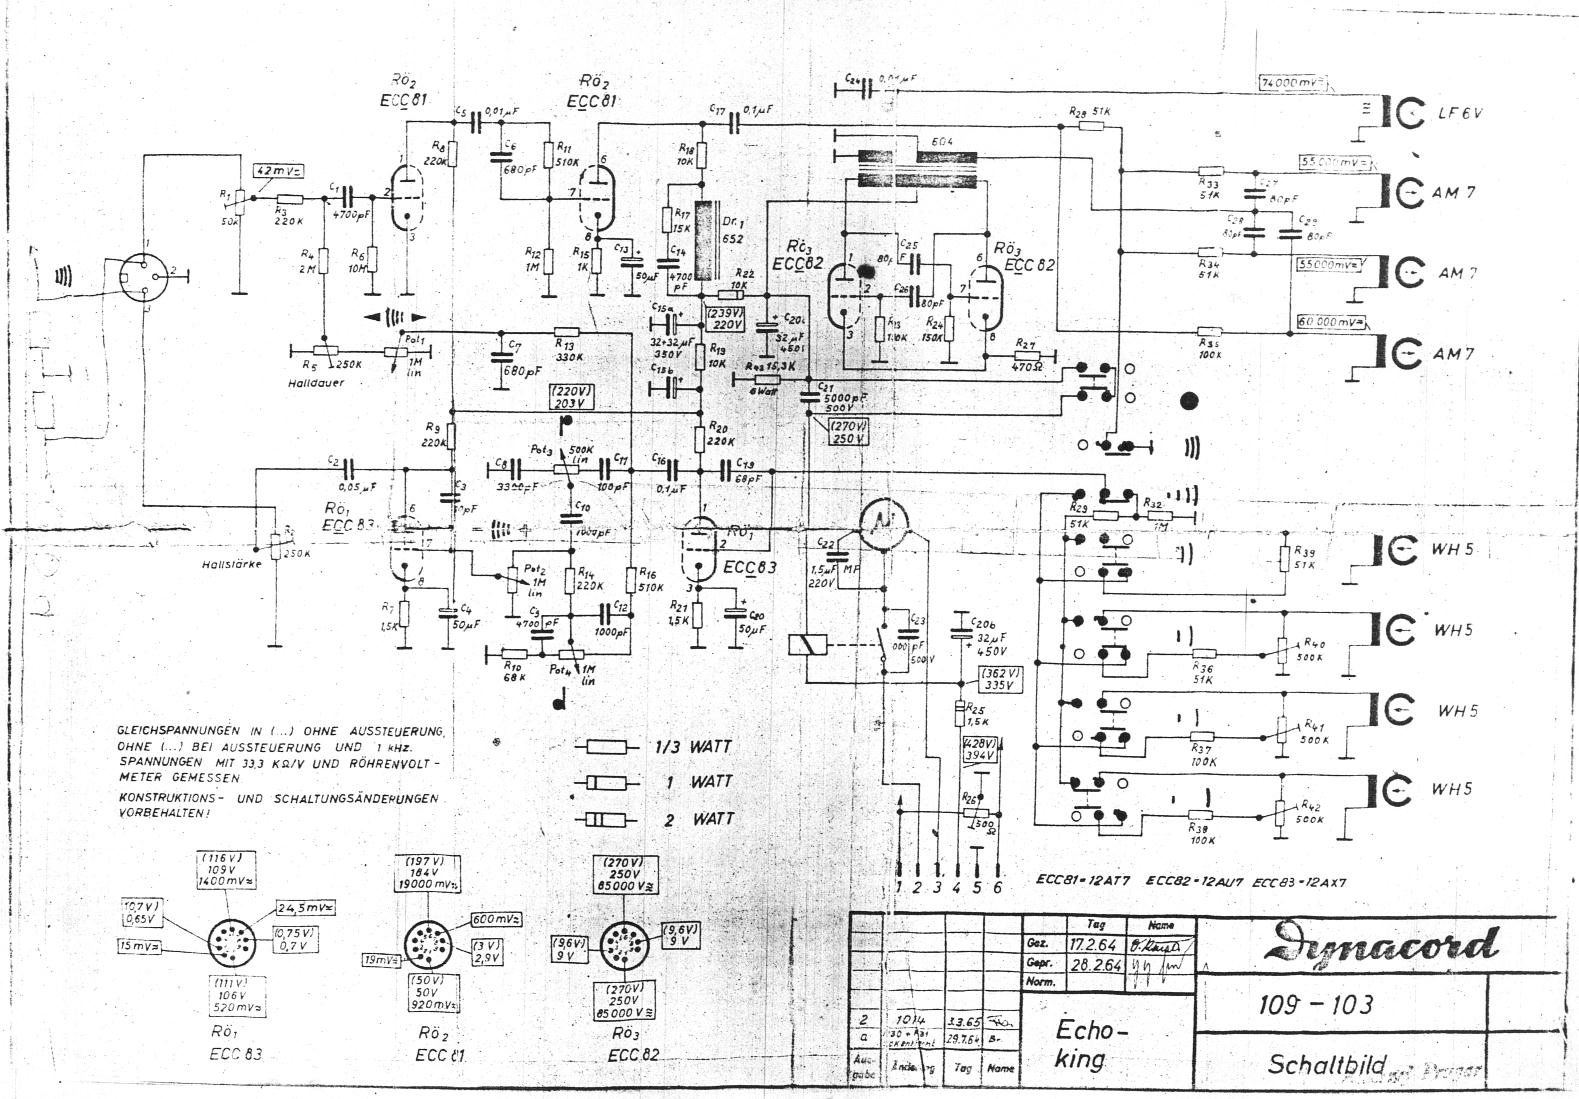 experimentalists anonymous diy archivesFree Information Society Voice Recorder Electronic Circuit Schematic #8